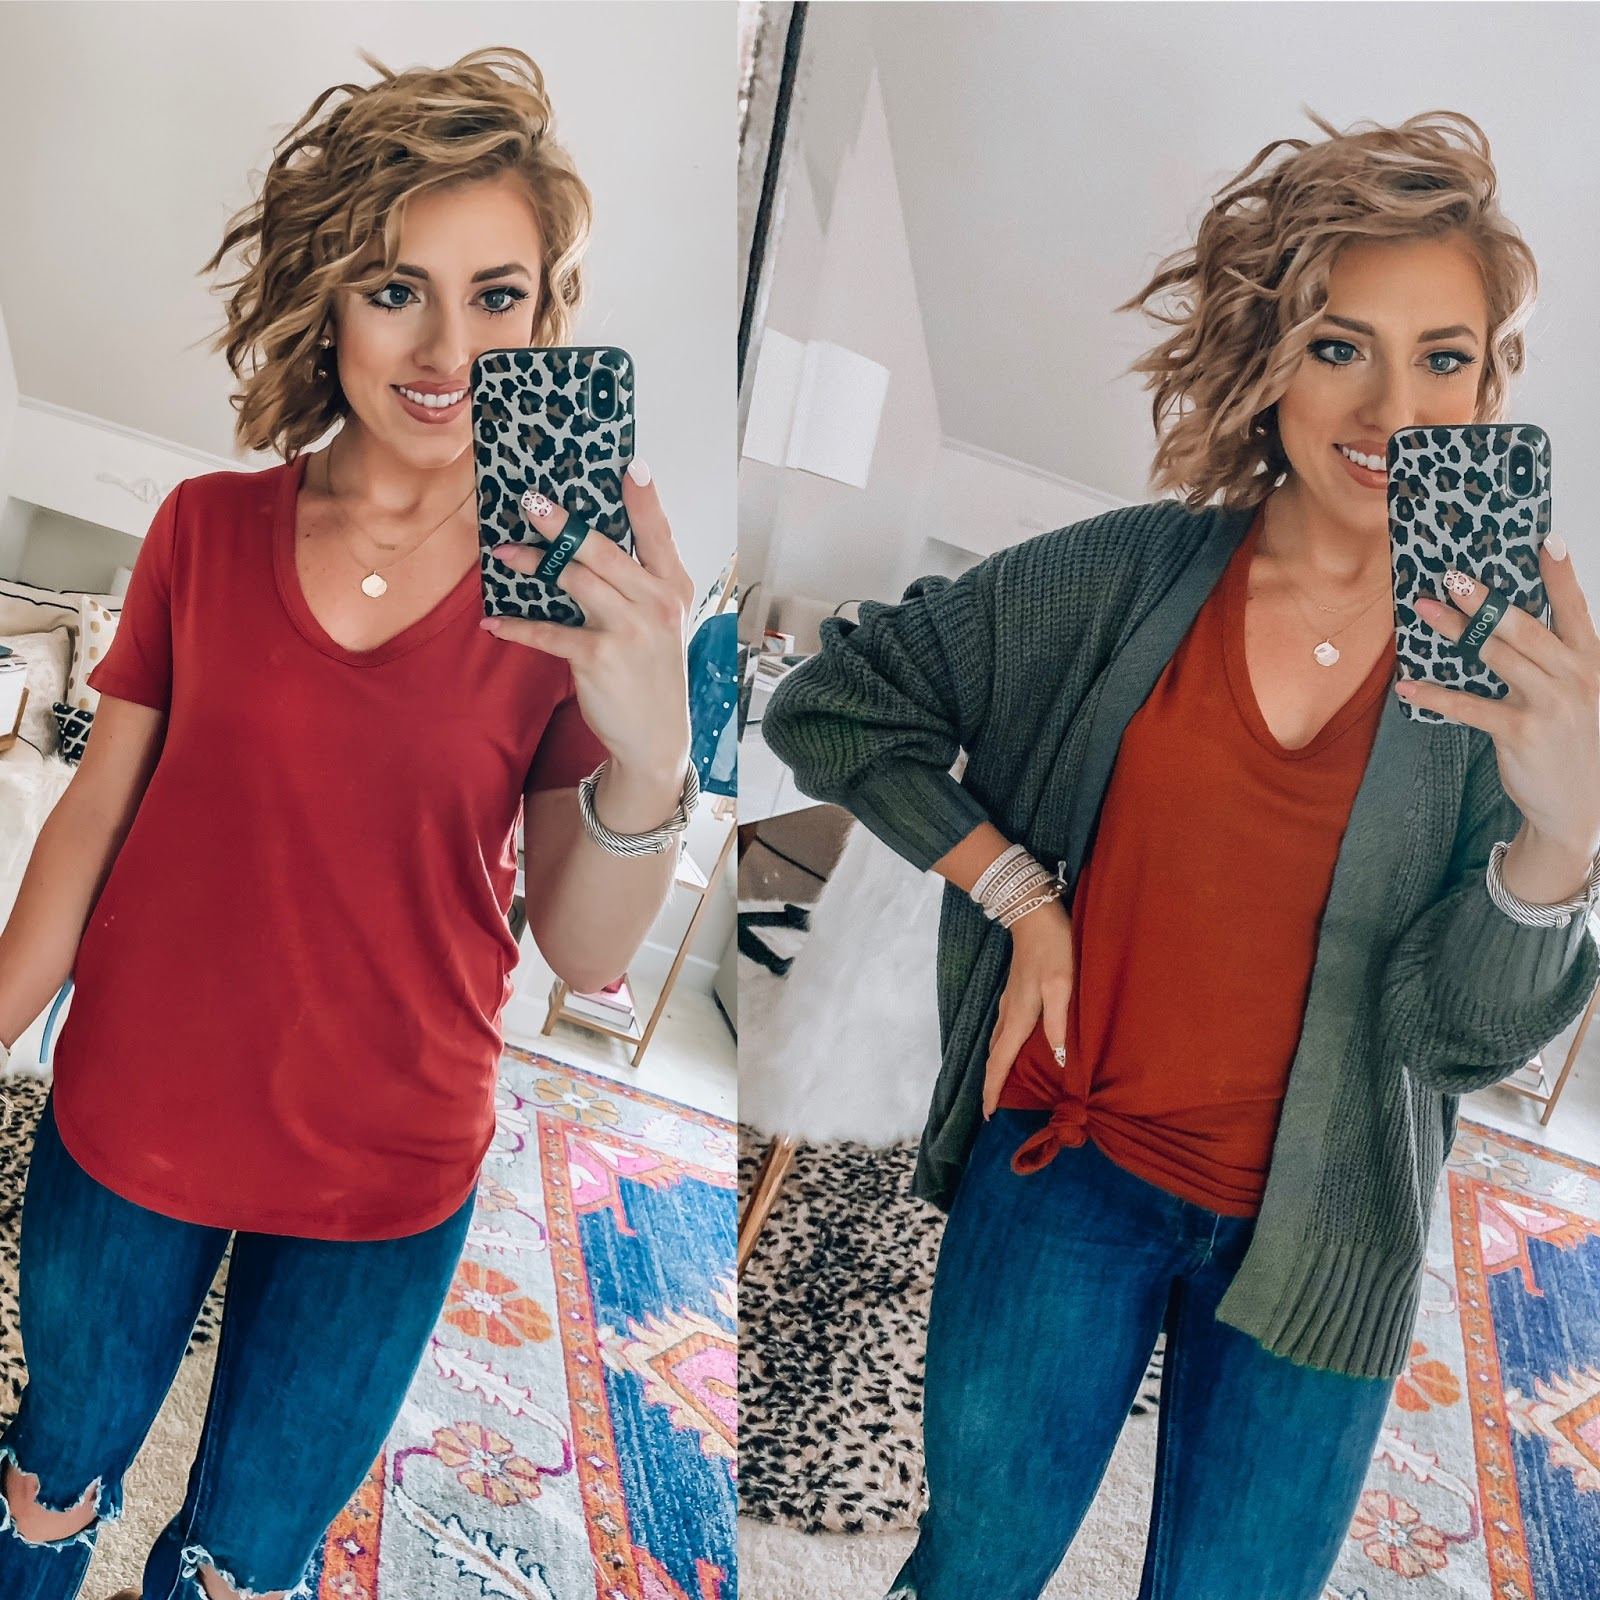 Target Fall Finds: Part 2 - Ultra Soft T-Shirt with $20 Olive Cardigan - Something Delightful Blog #fallfashion #leopard #pajamas #targetstyle #targetfallfinds